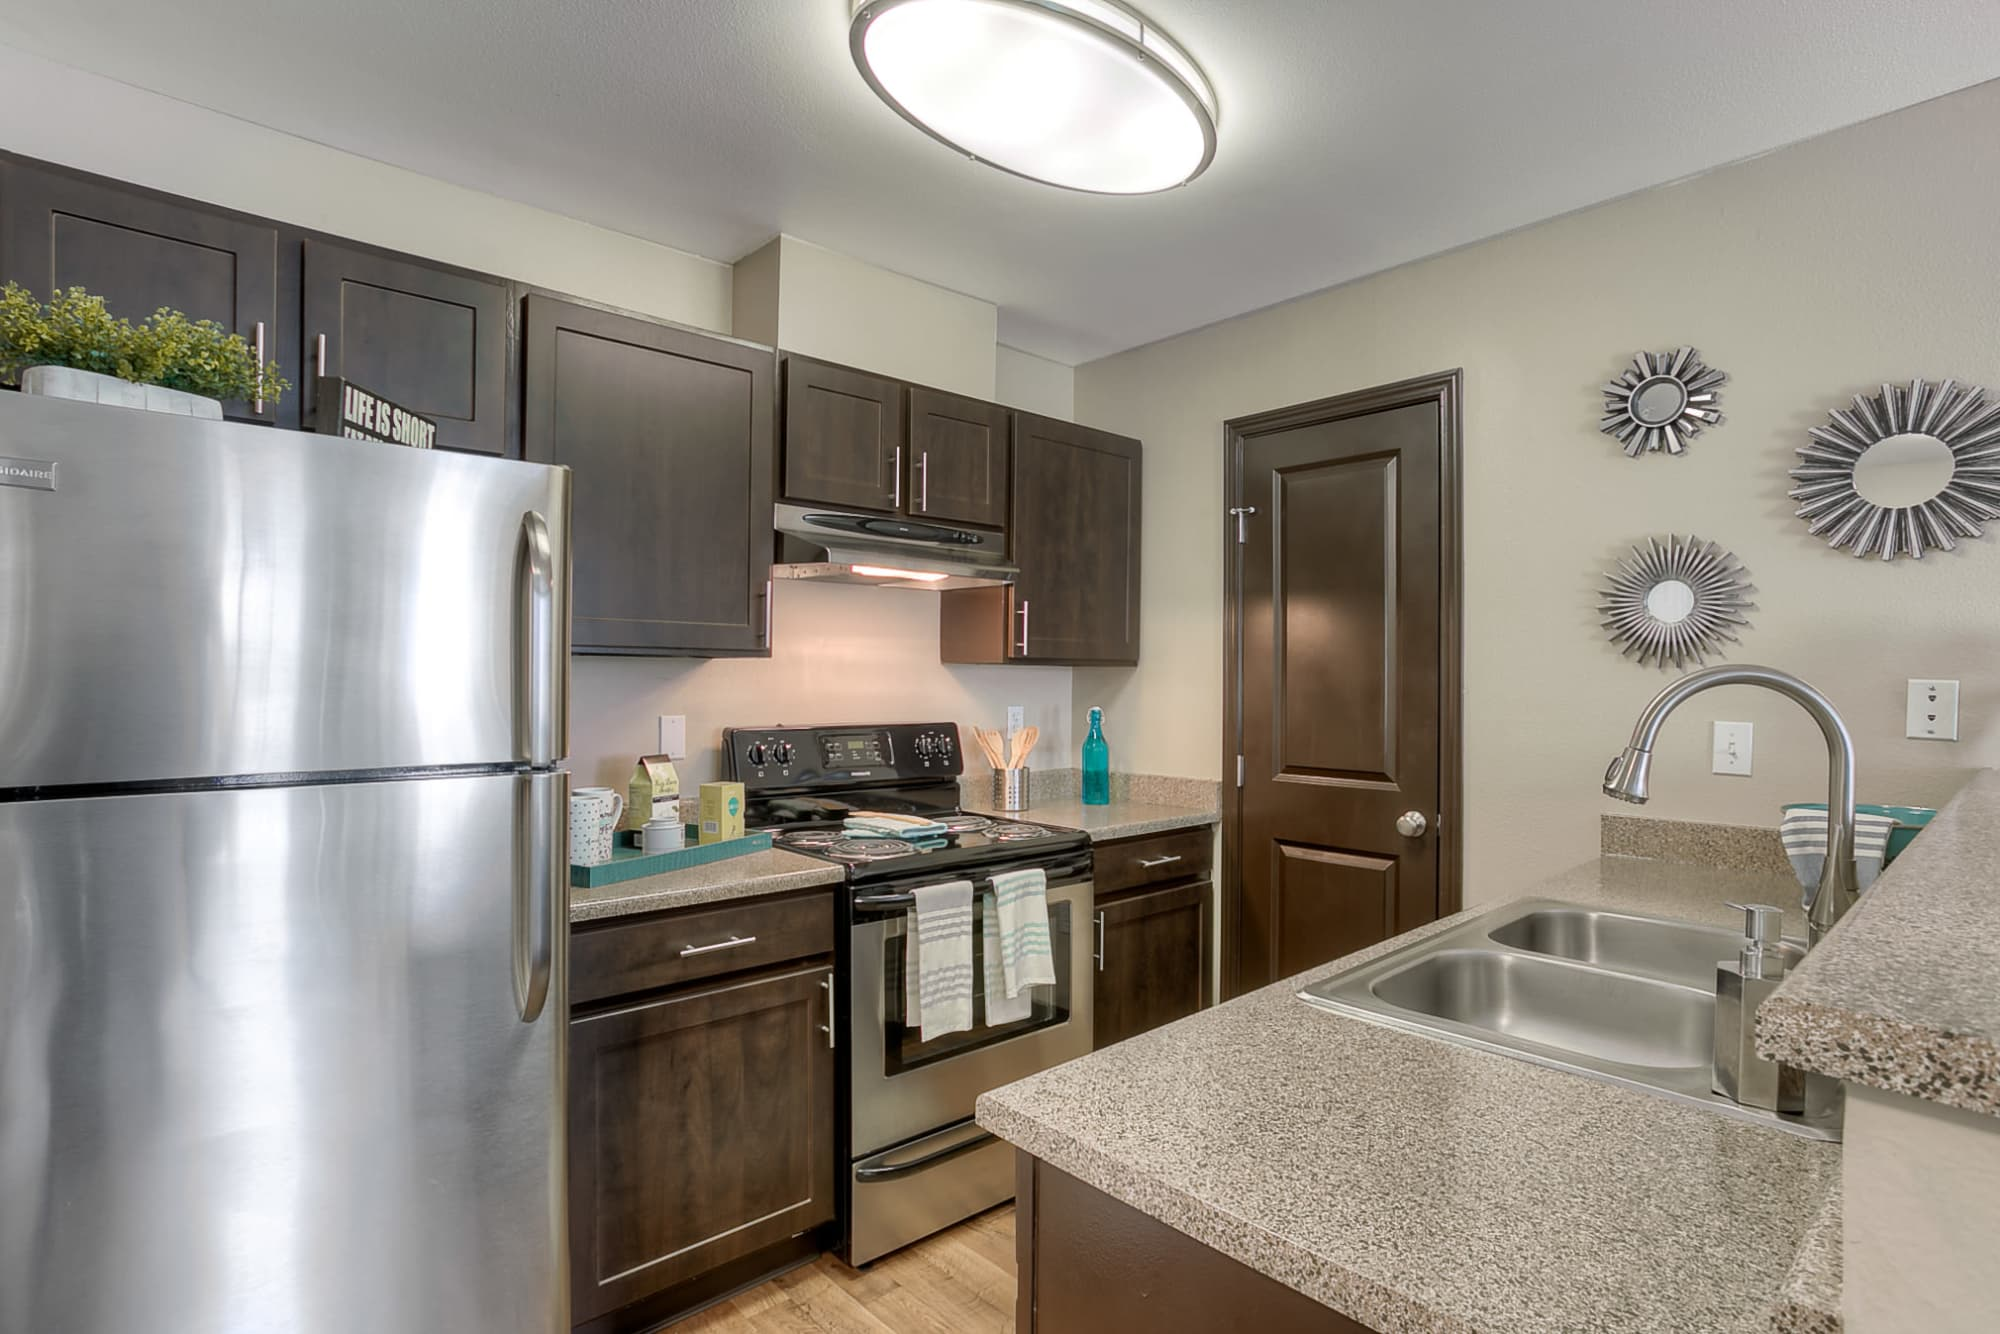 Brown Renovated Model Kitchen with stainless steel appliances at Pebble Cove Apartments in Renton